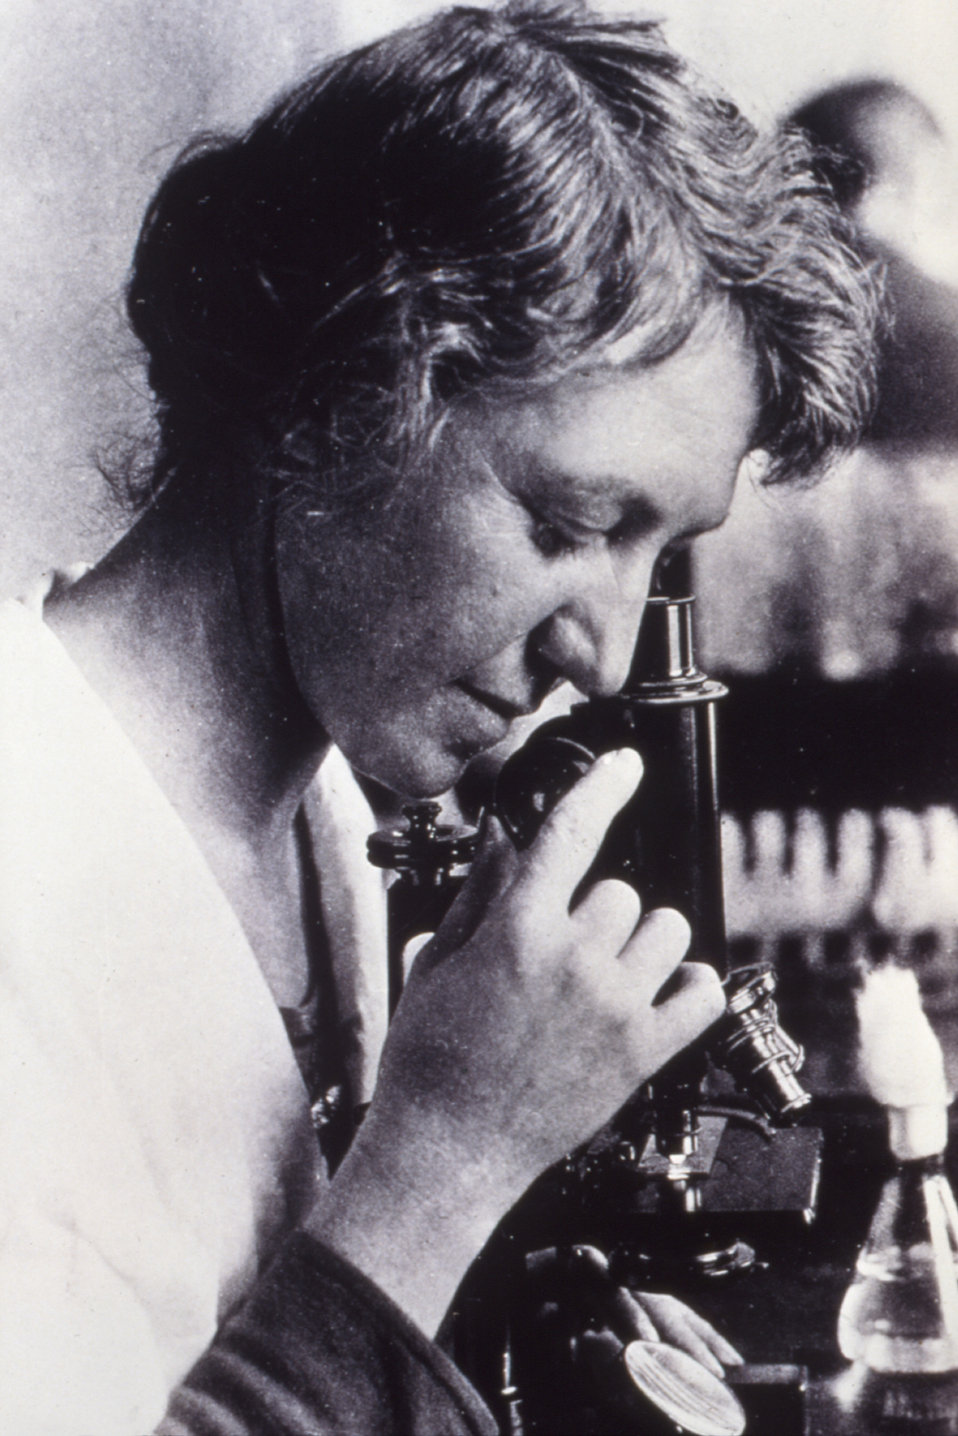 At her microscope, this historic image of bacteriologist Dr. Ida A. Bengston (1881-1952), was taken from the U.S. Public Health Service reco